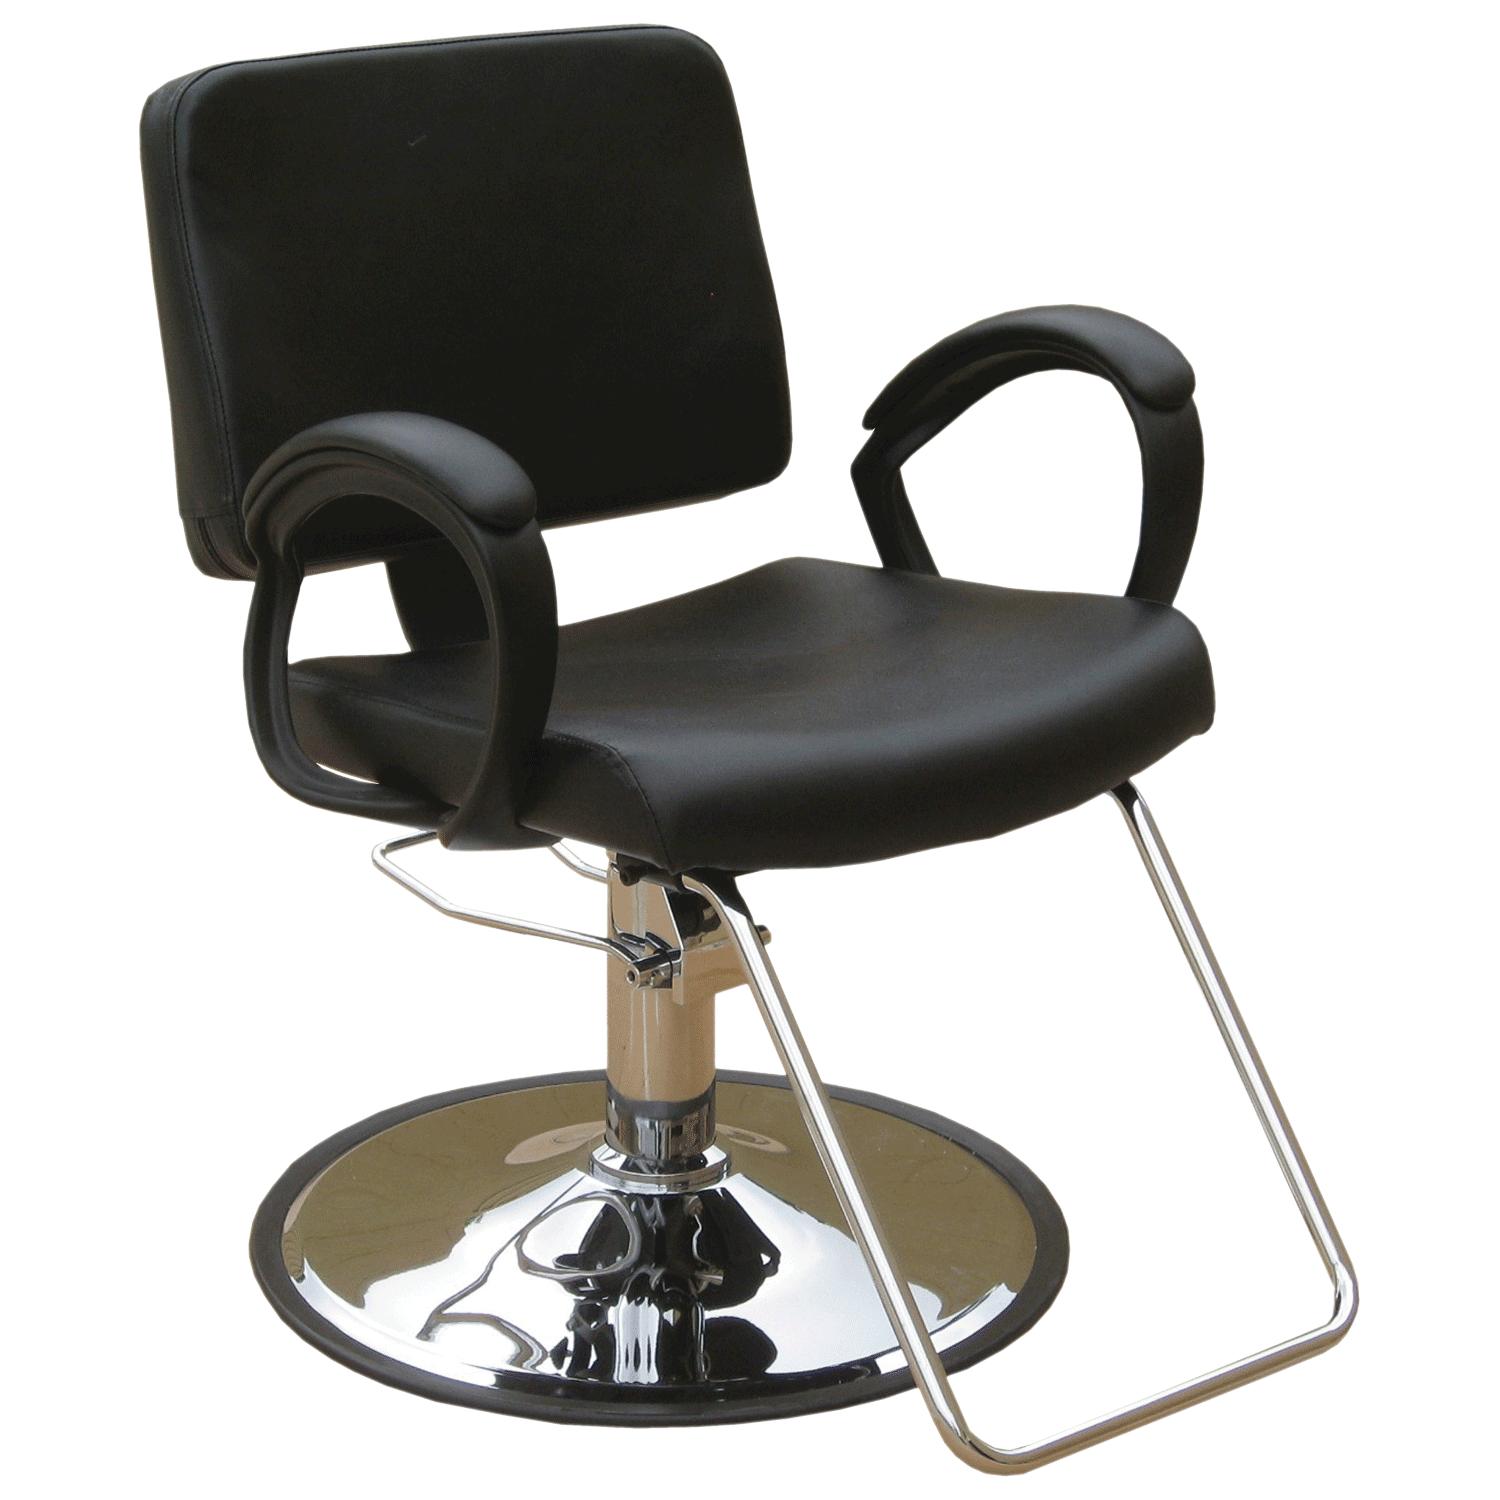 PureSana Ava Styling Chair with Base at CosmoProf Equipment